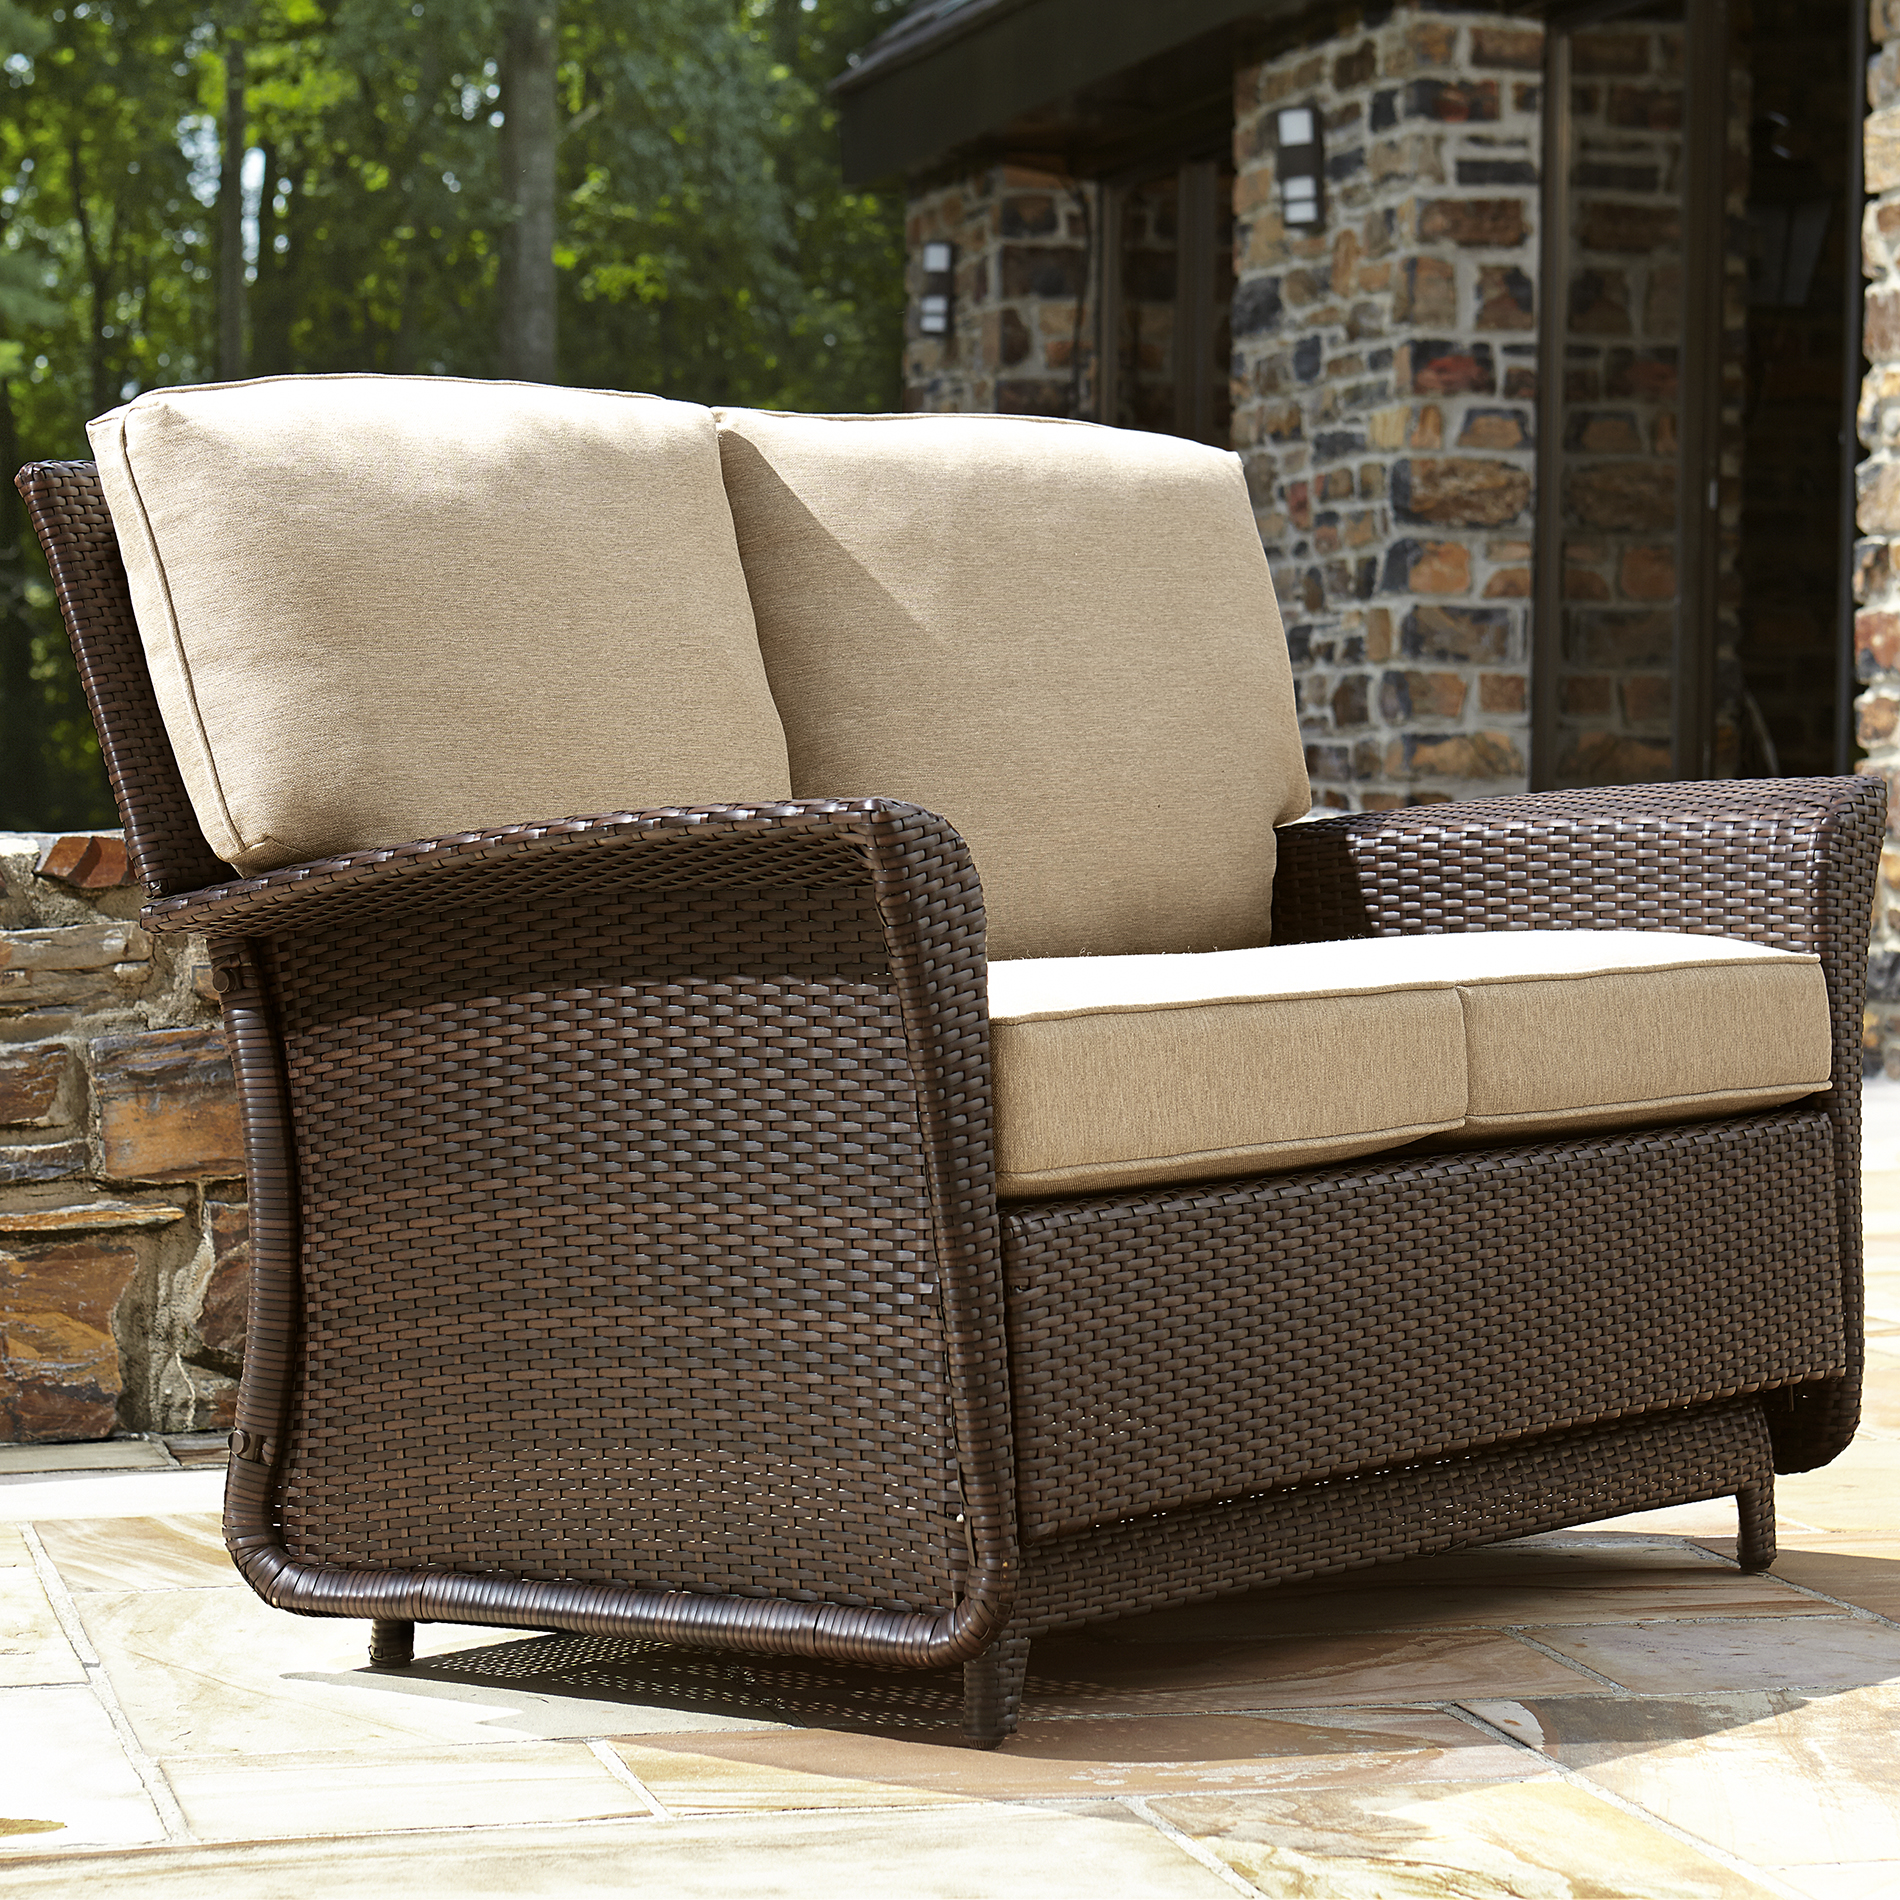 Ty Pennington Style Parkside Double Glider - Limited